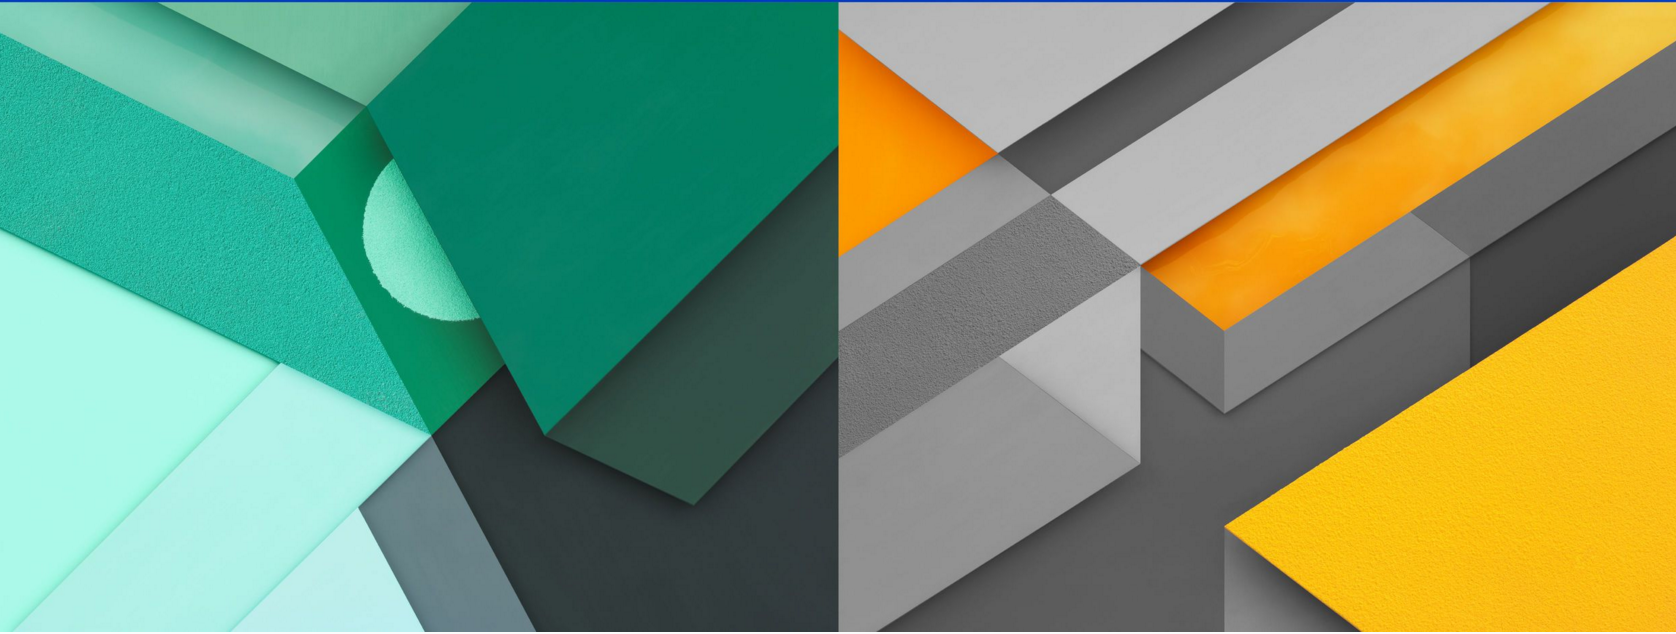 Android Marshmallow wallpapers get the Carl Kleiner treatment 1676x634